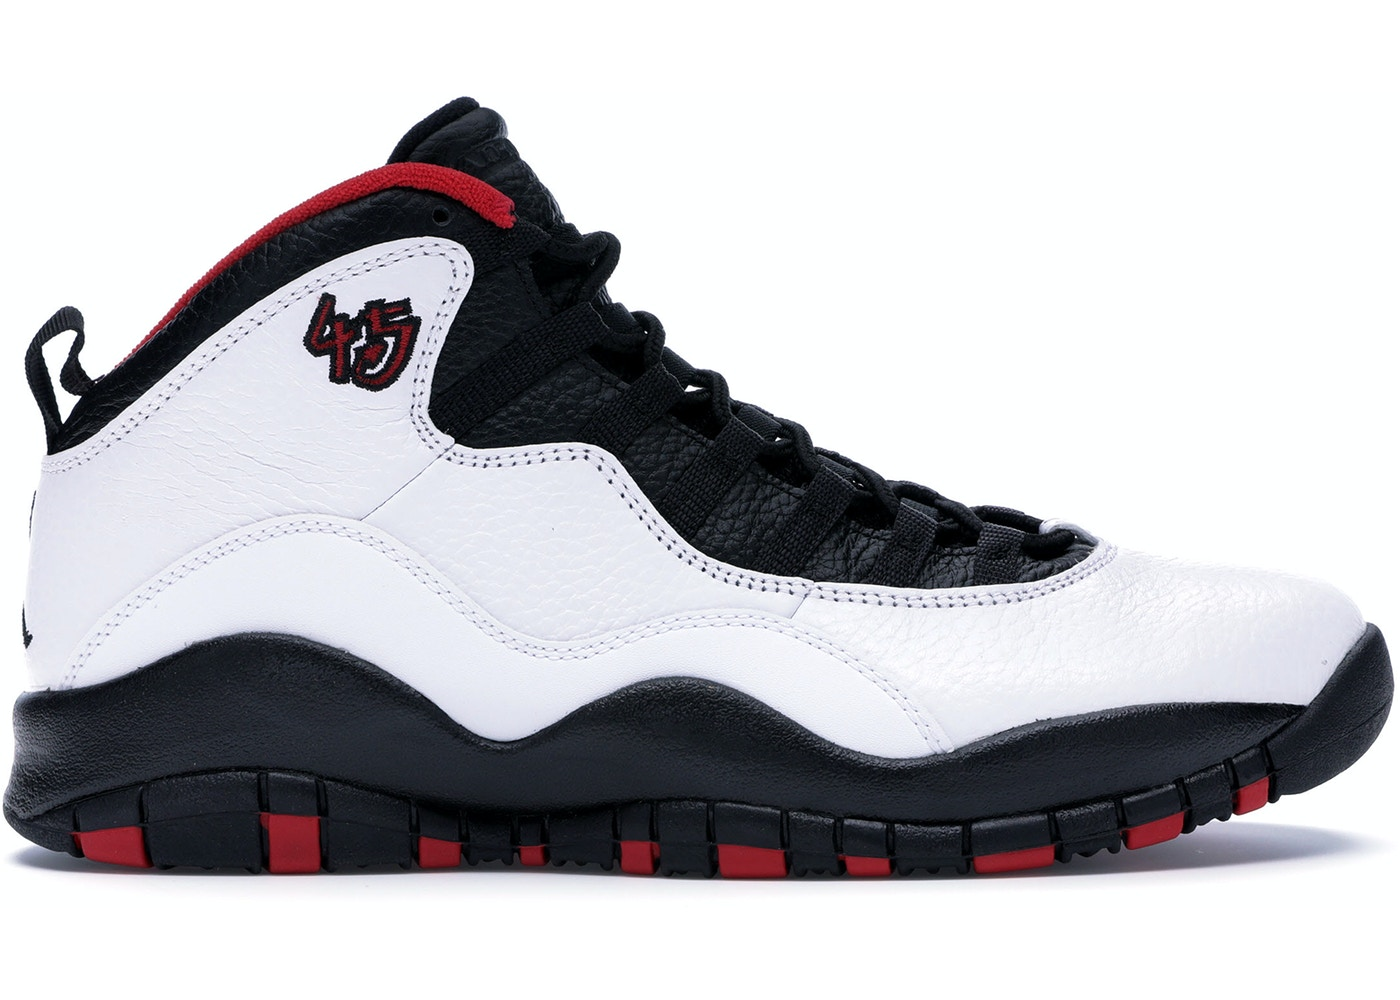 dcf3578ccd1764 Buy Air Jordan 10 Shoes   Deadstock Sneakers